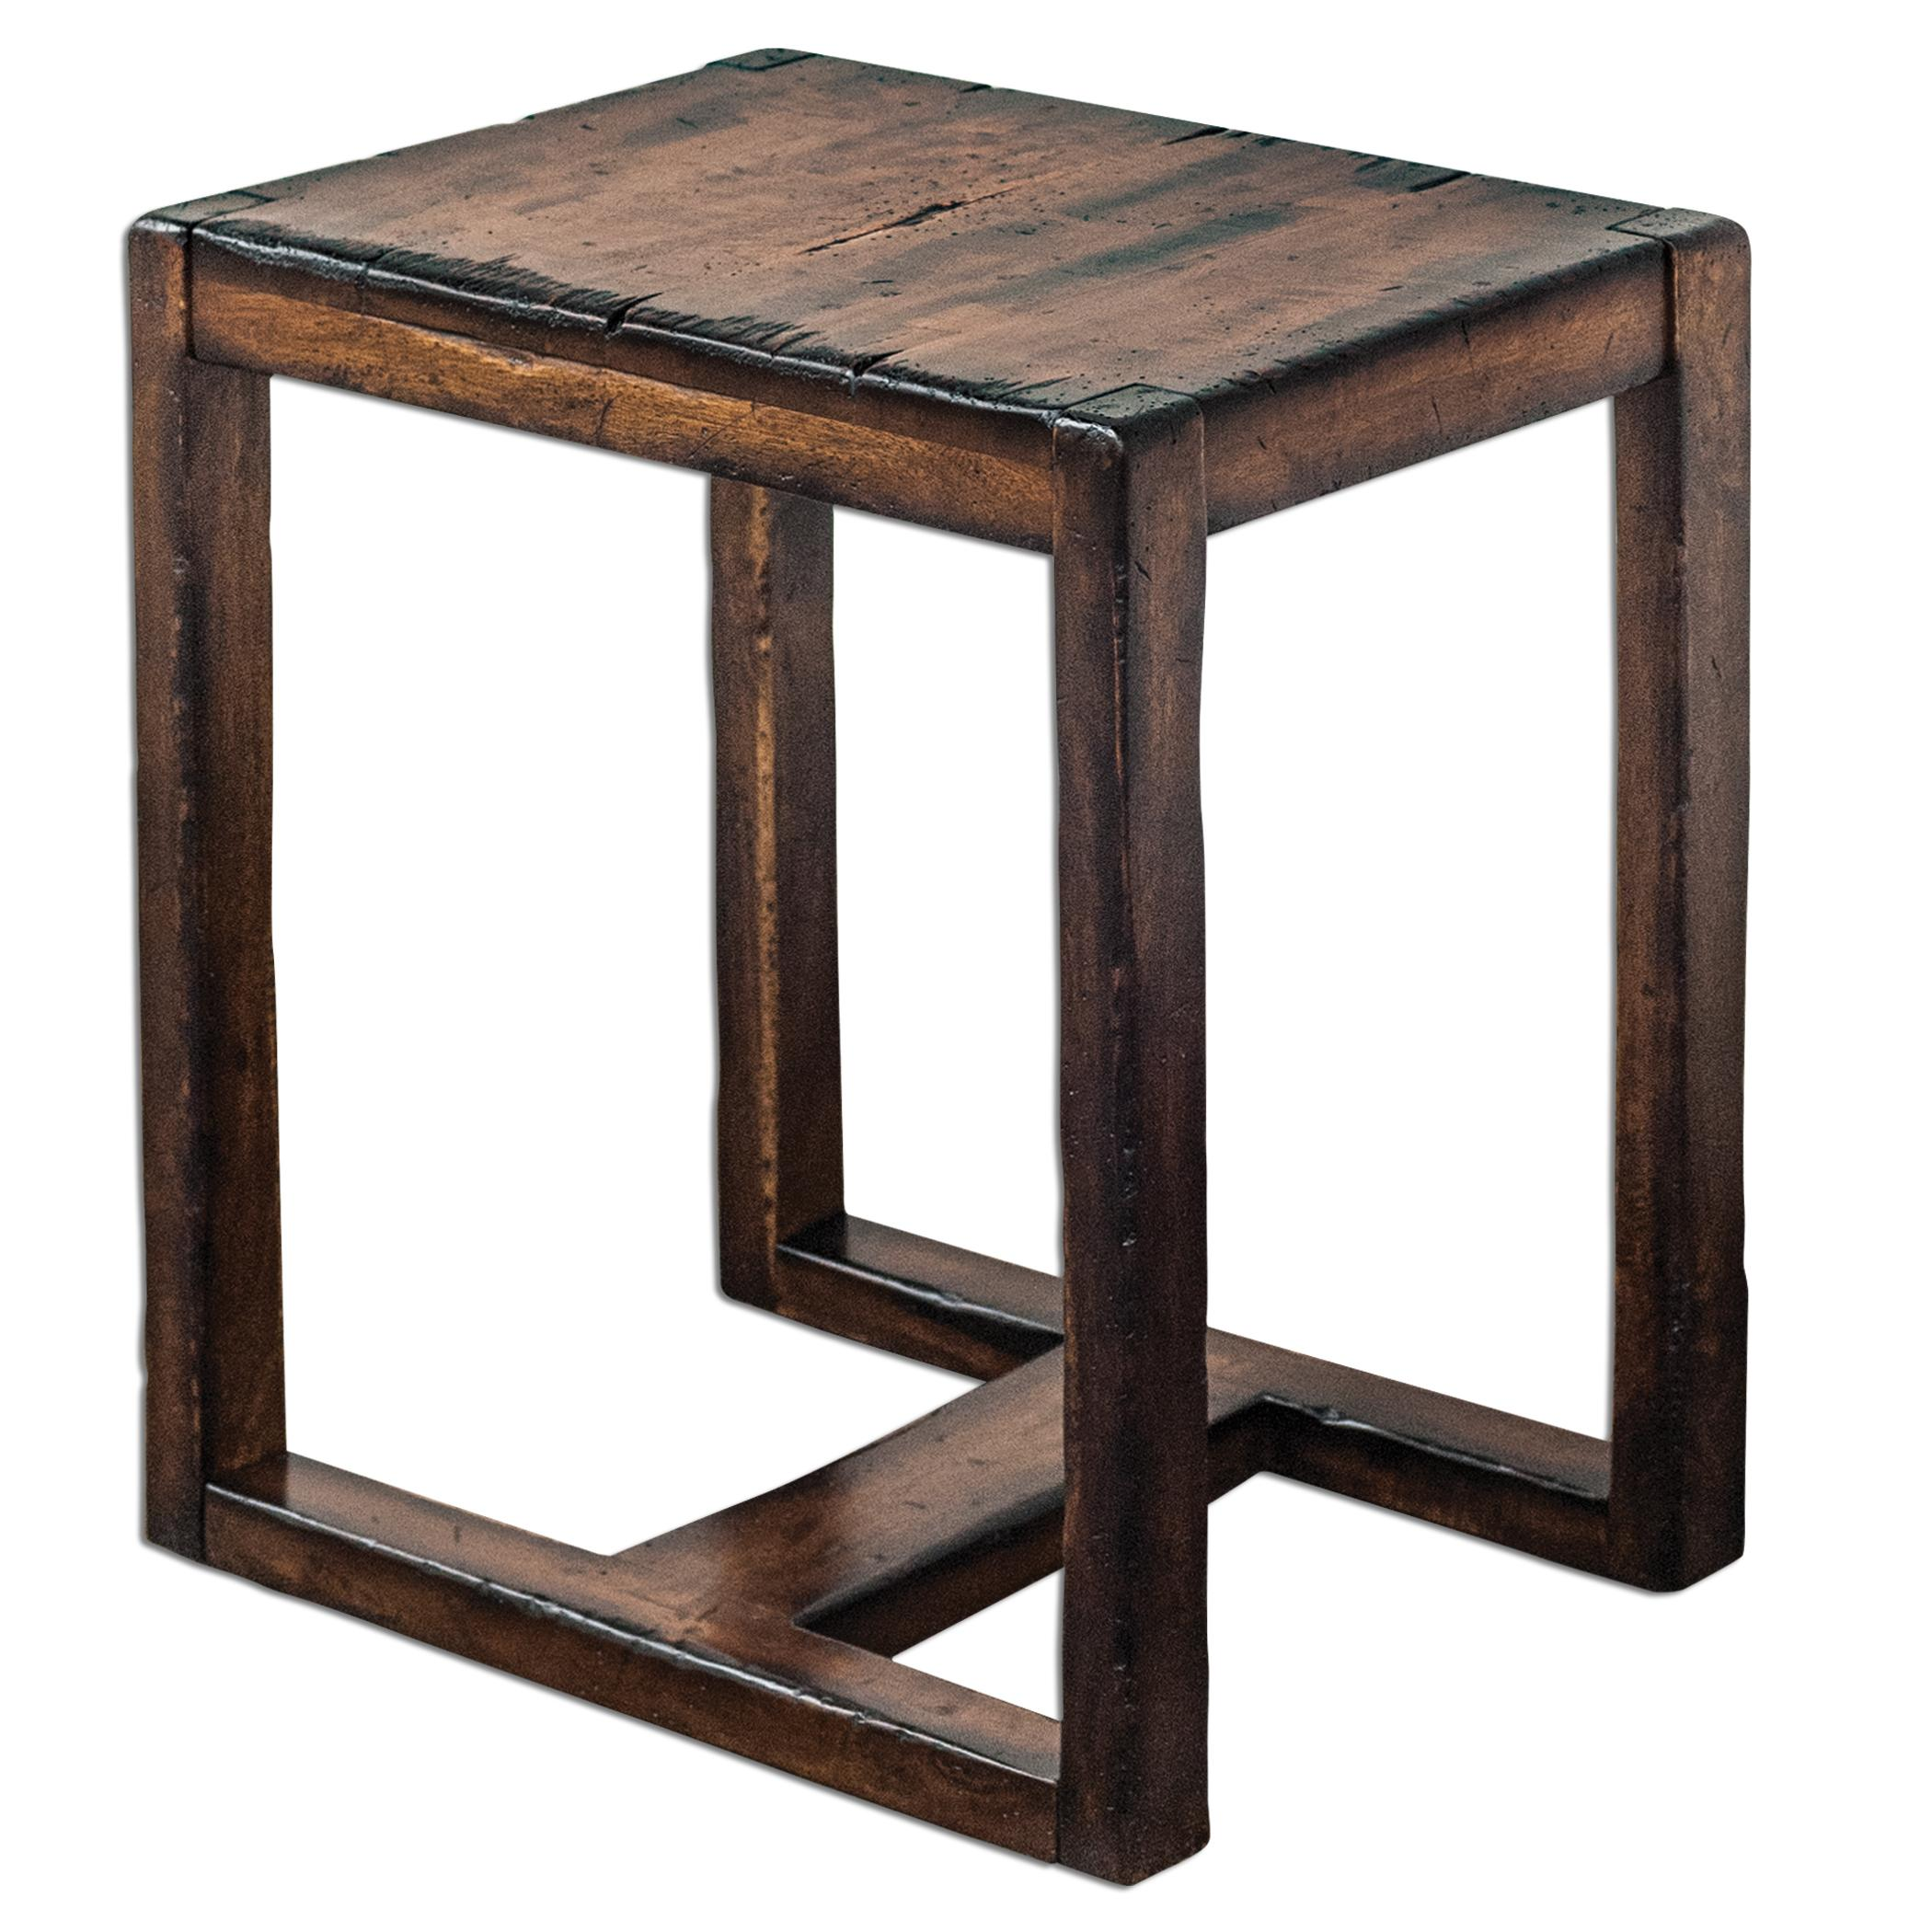 Uttermost Accent Furniture Deni Wooden End Table - Item Number: 25604